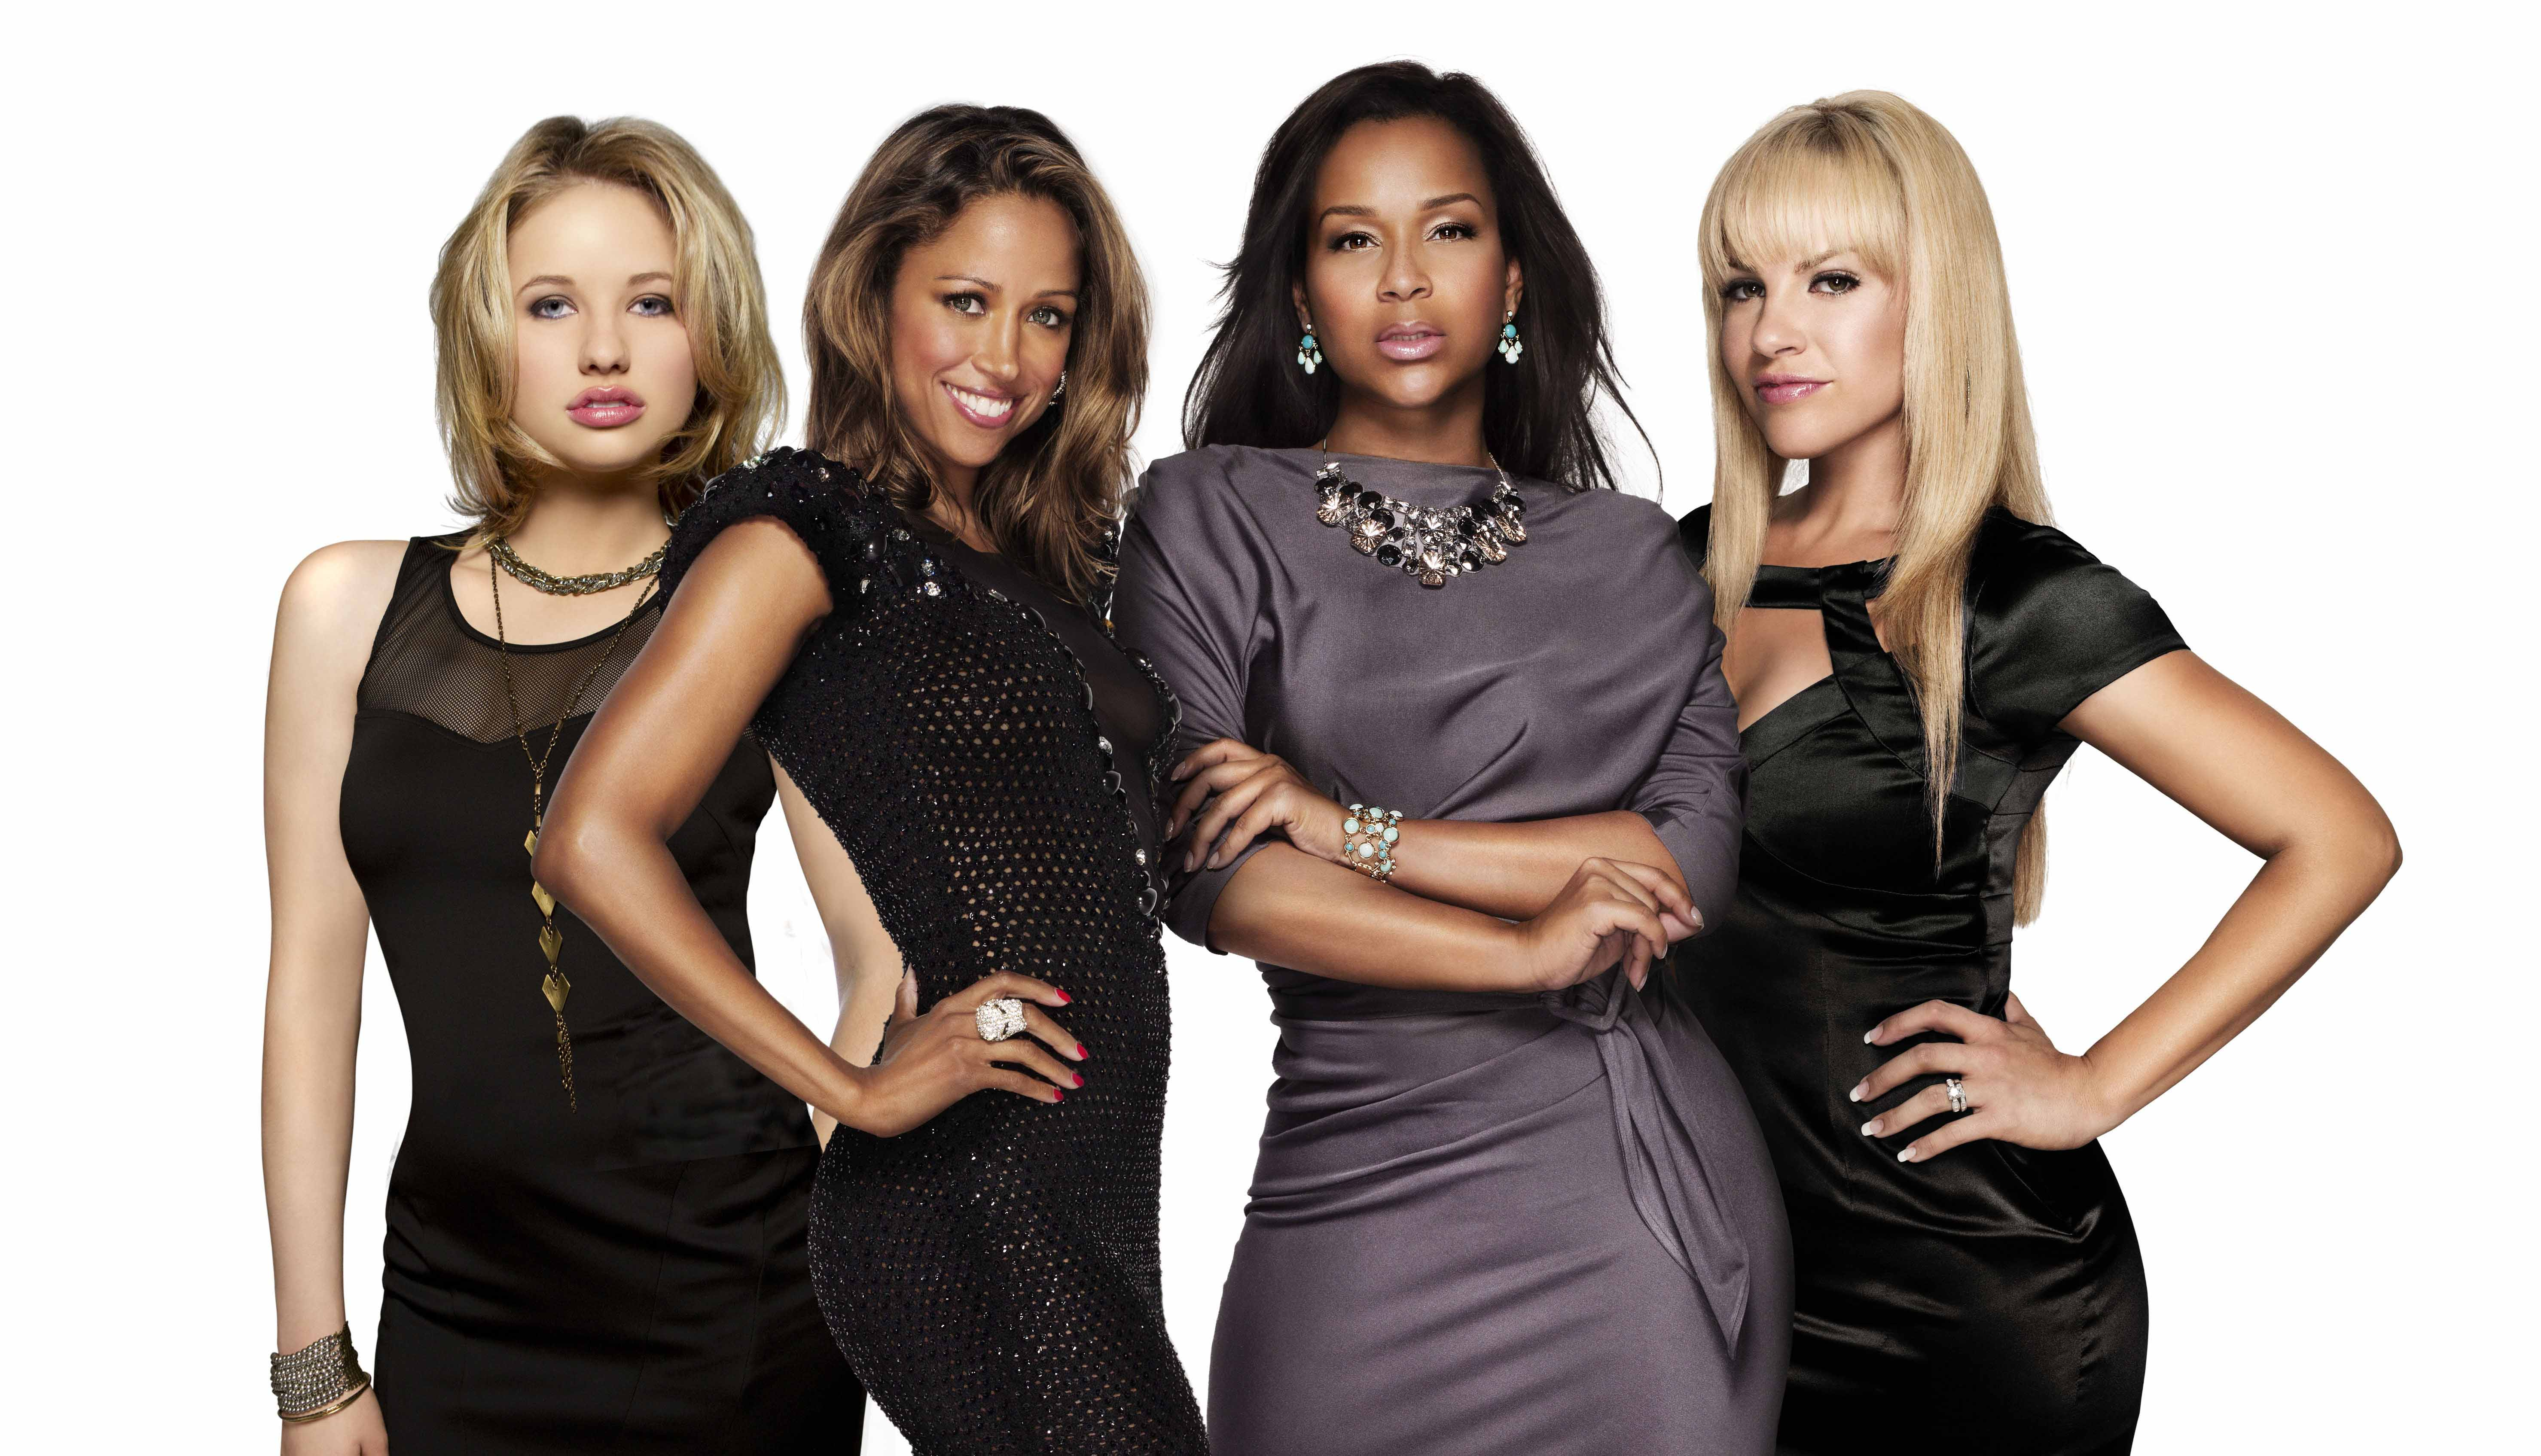 cast from VH1 Single Ladies